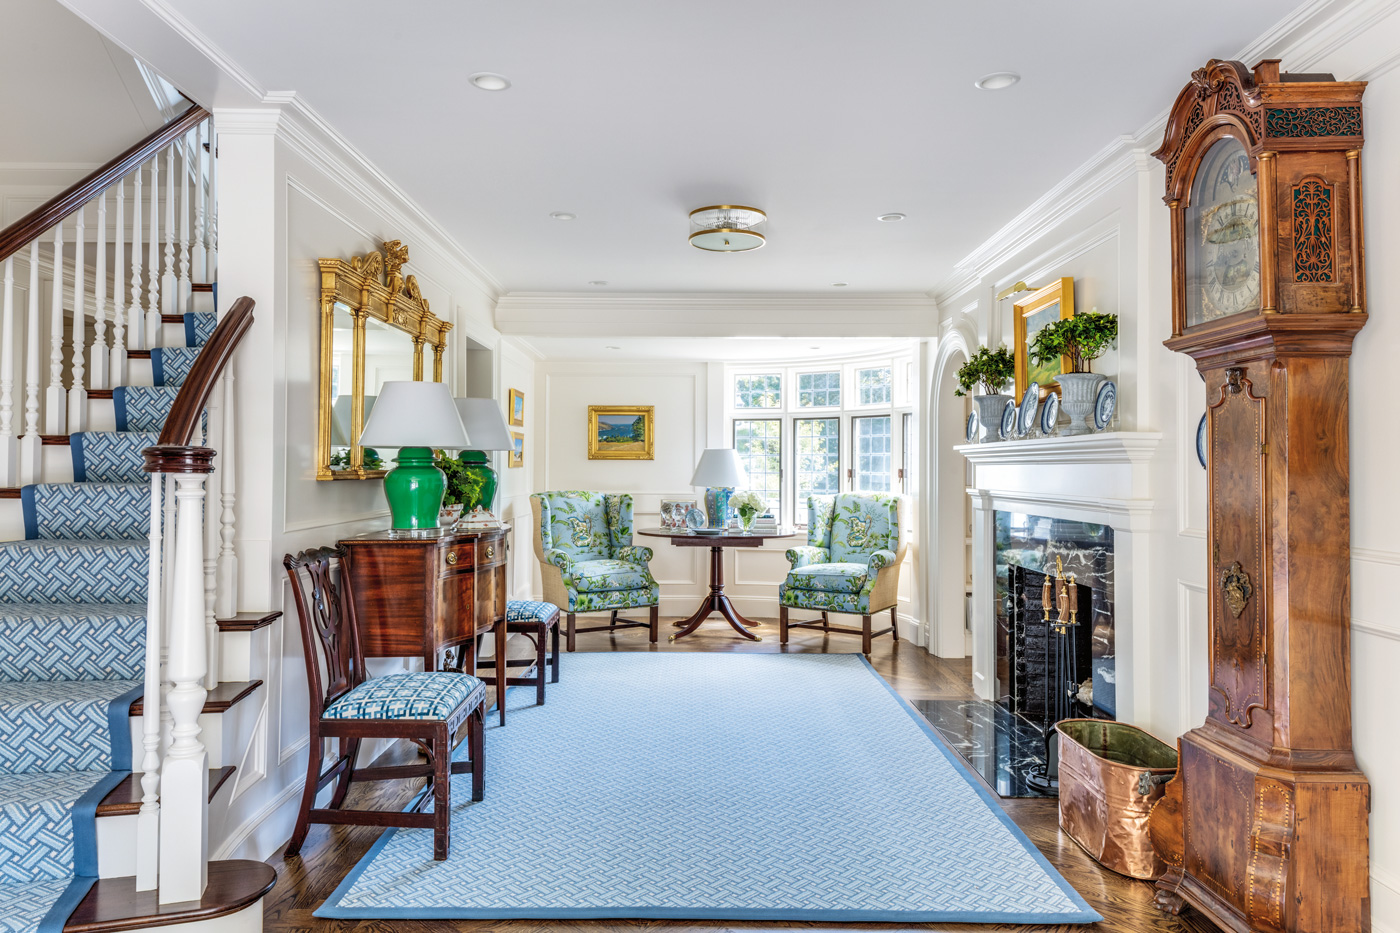 Reimagined front entryway for a high-end custom renovation